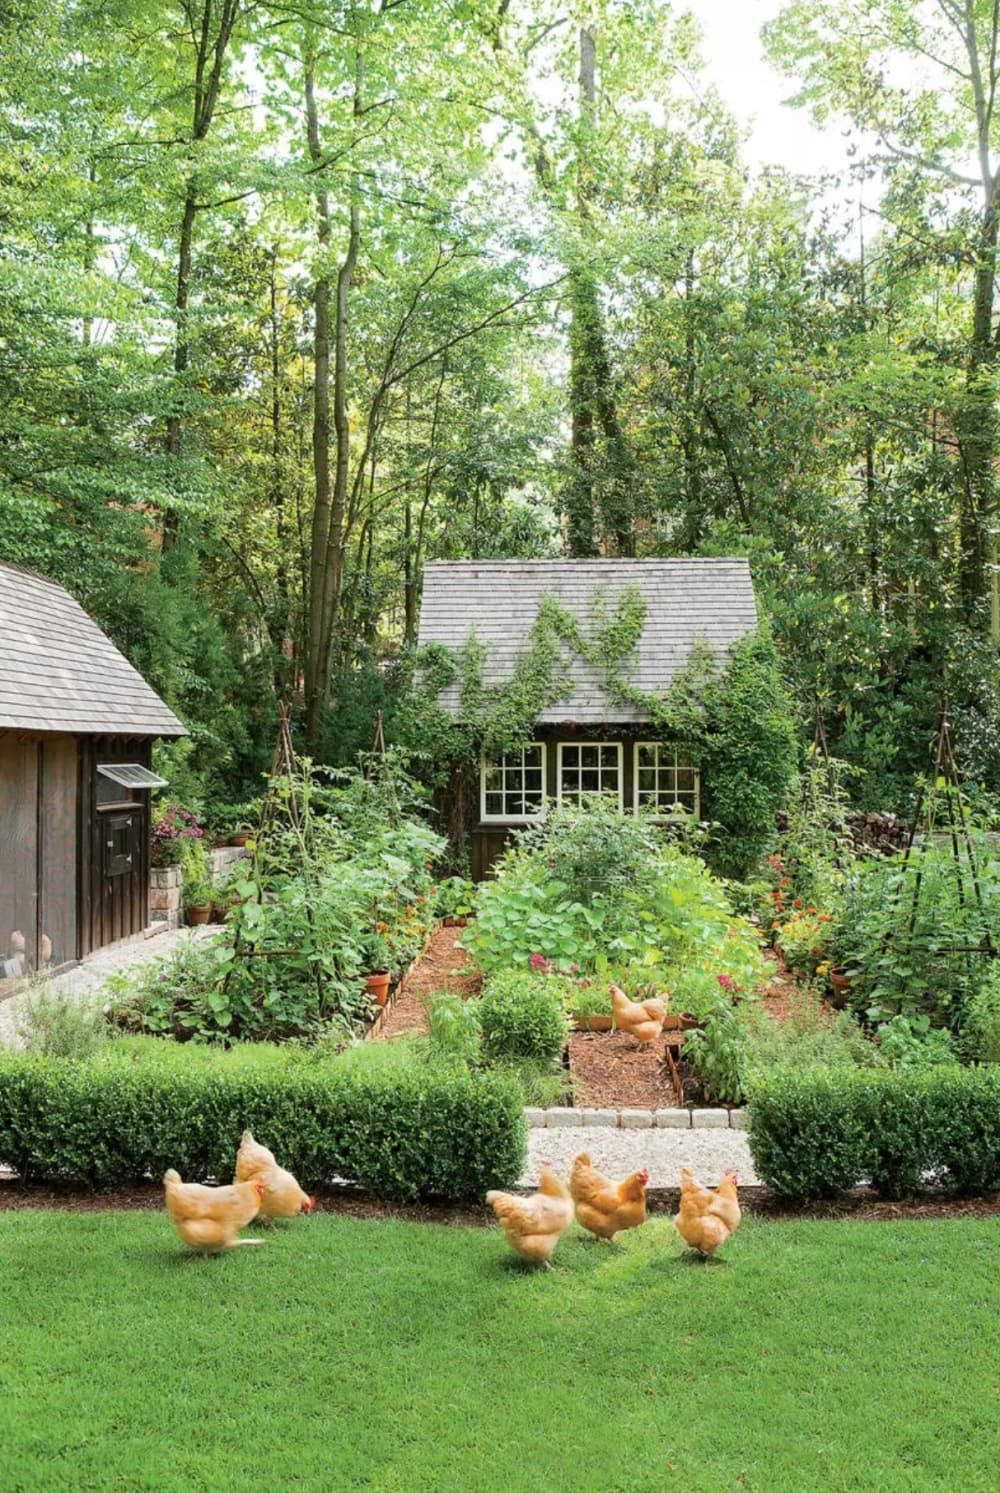 12 Big Garden Trends We're So Excited to See This Year   Dream ...